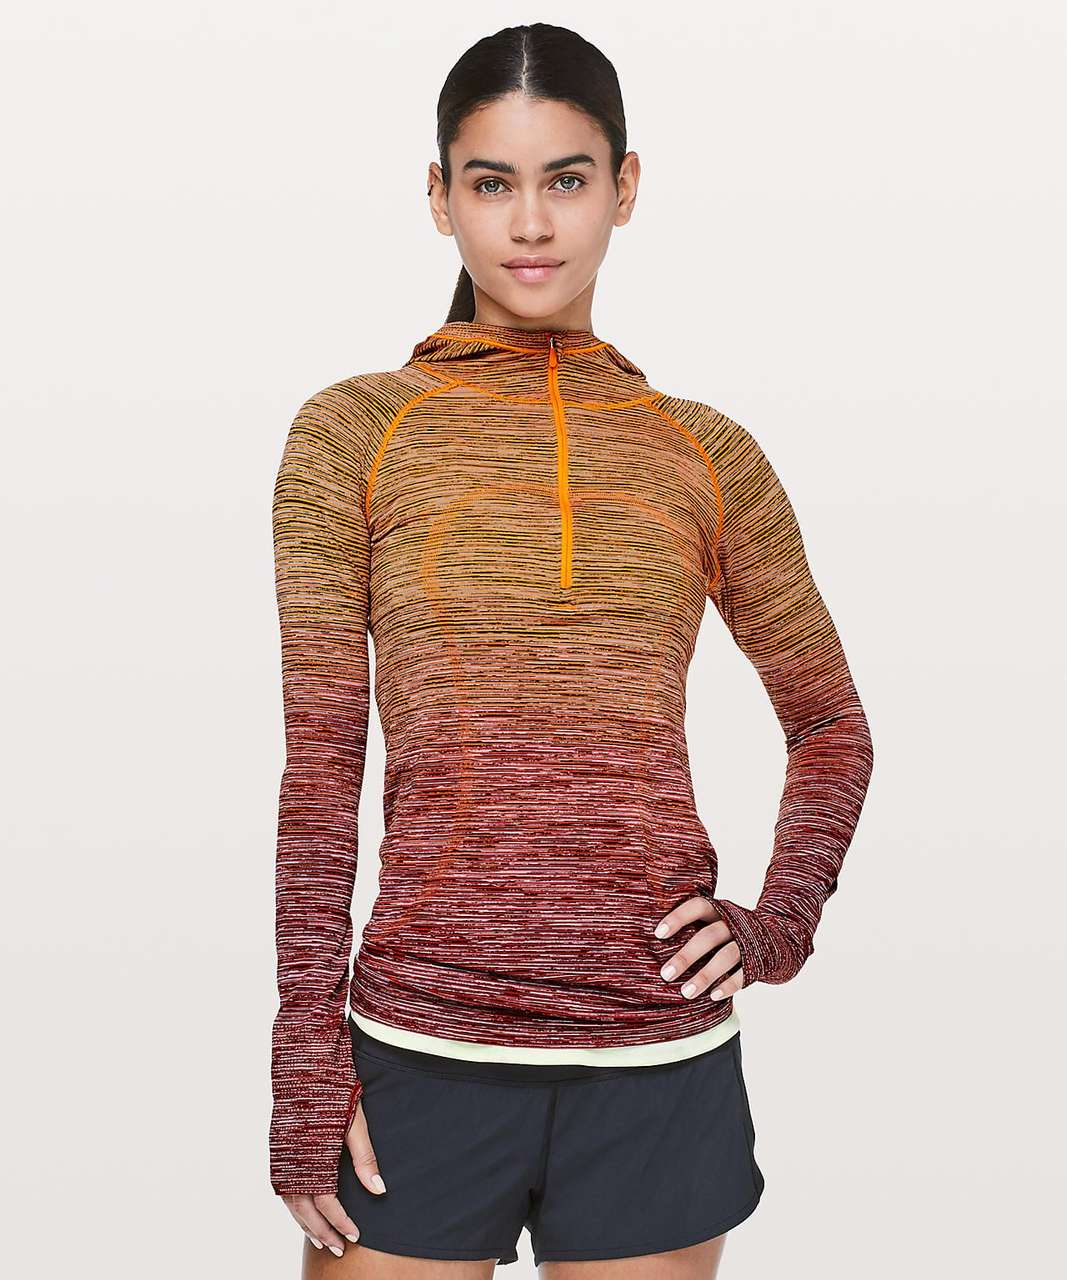 Lululemon Swiftly Tech Hooded 1/2 Zip *SW - Vivid Amber / White / Hot Heat / Black